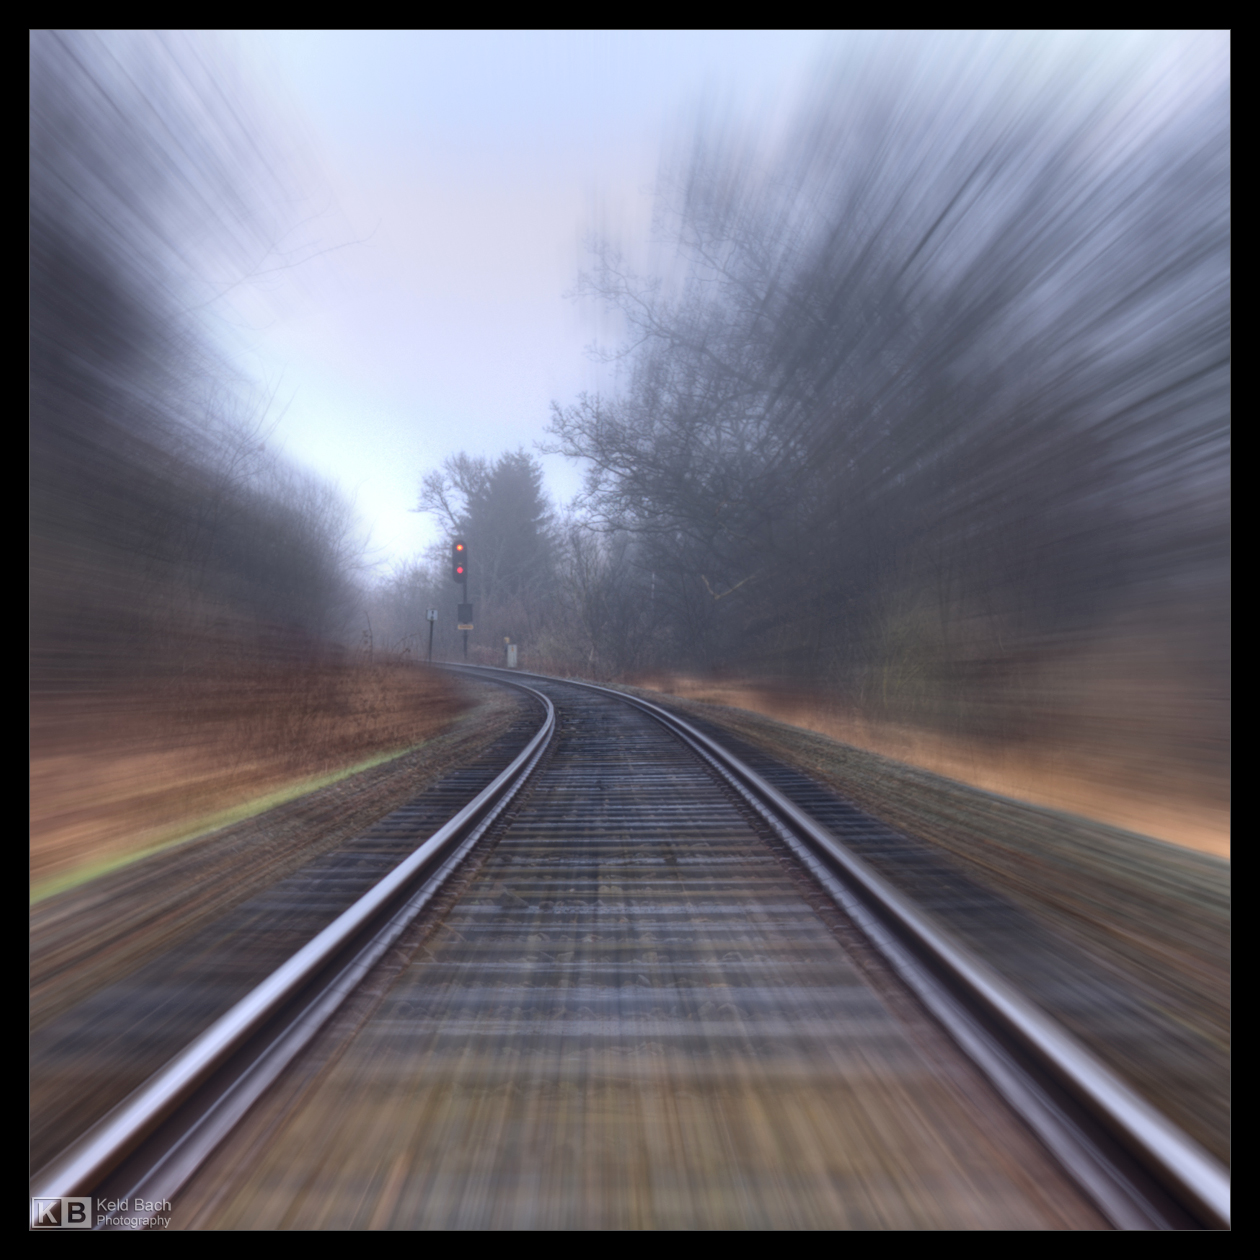 Riding the Rails by KeldBach